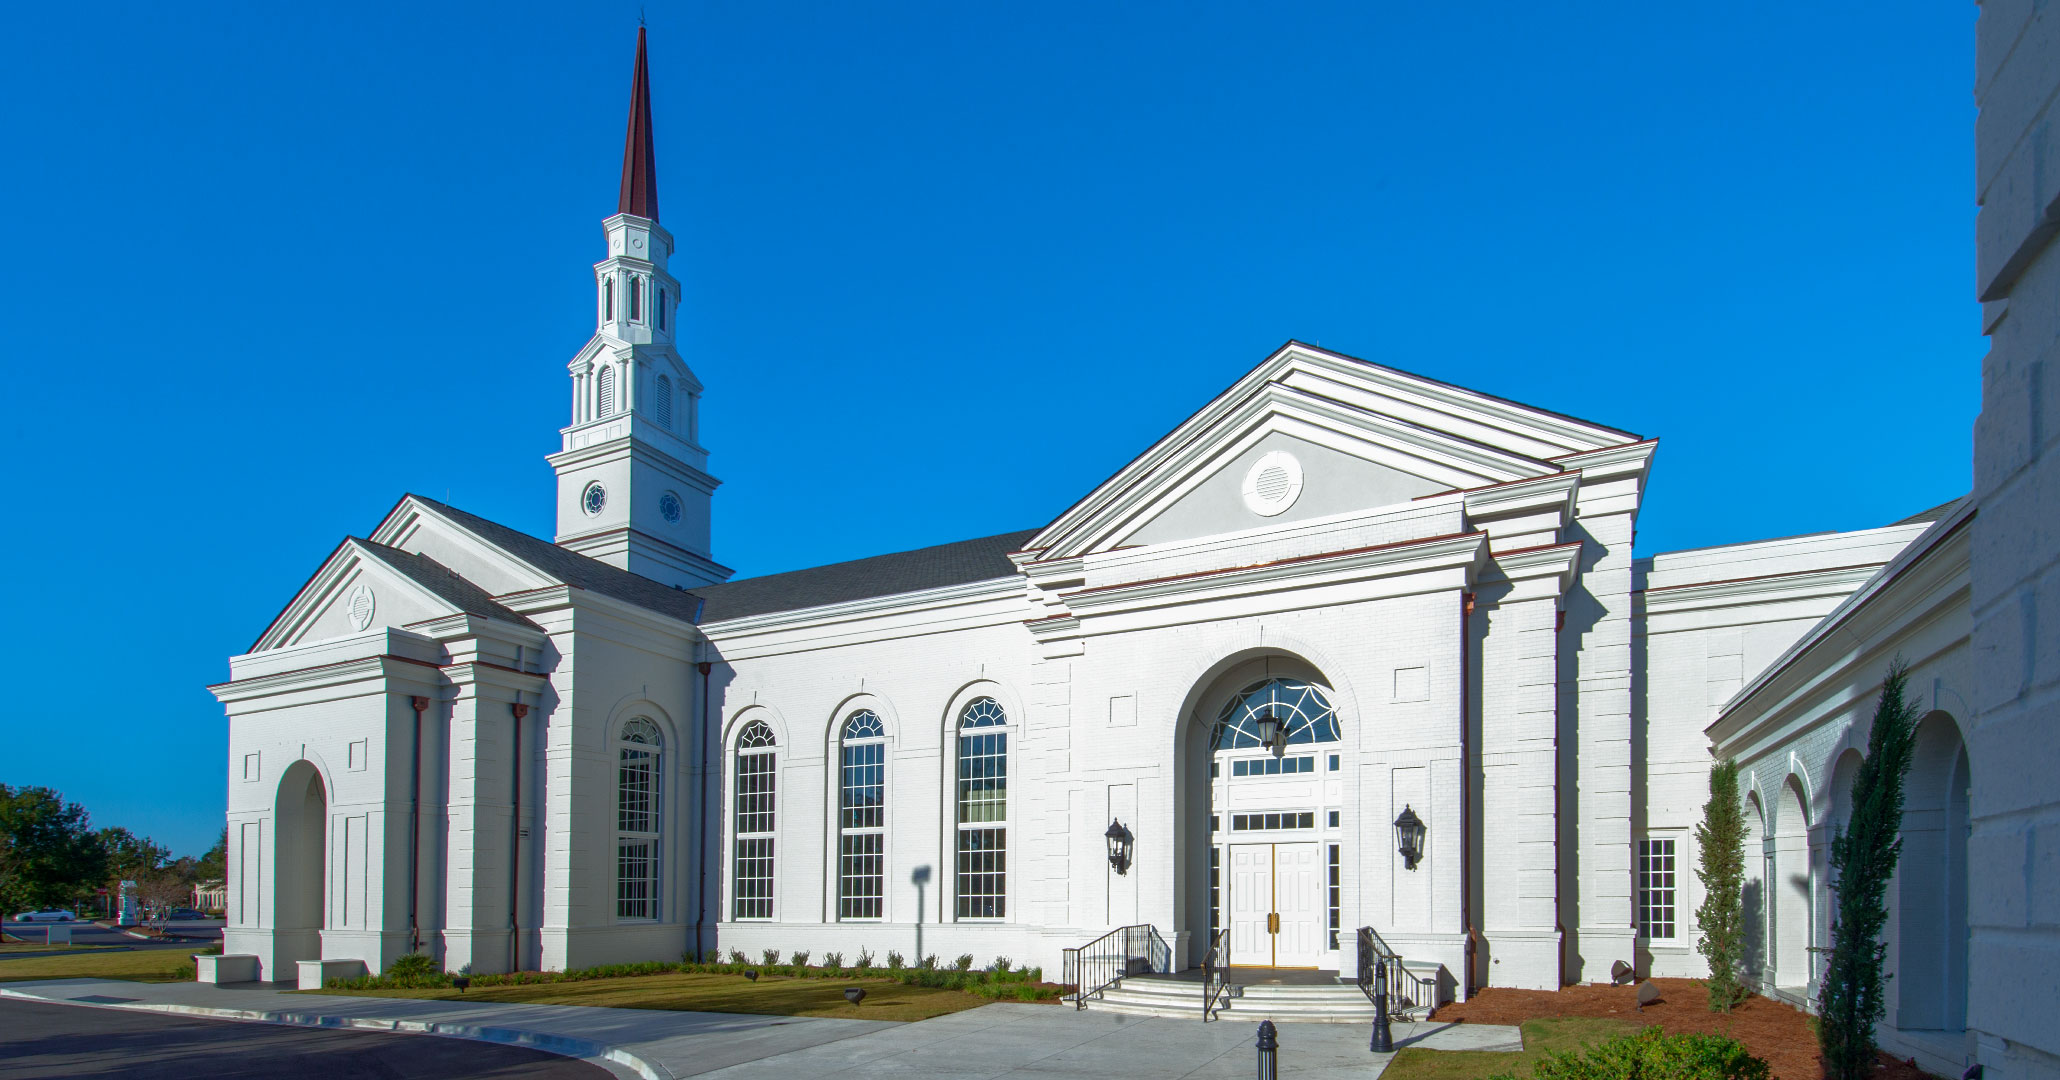 Church project designed by Boudreaux architects at First Presbyterian Church in Myrtle Beach, SC.